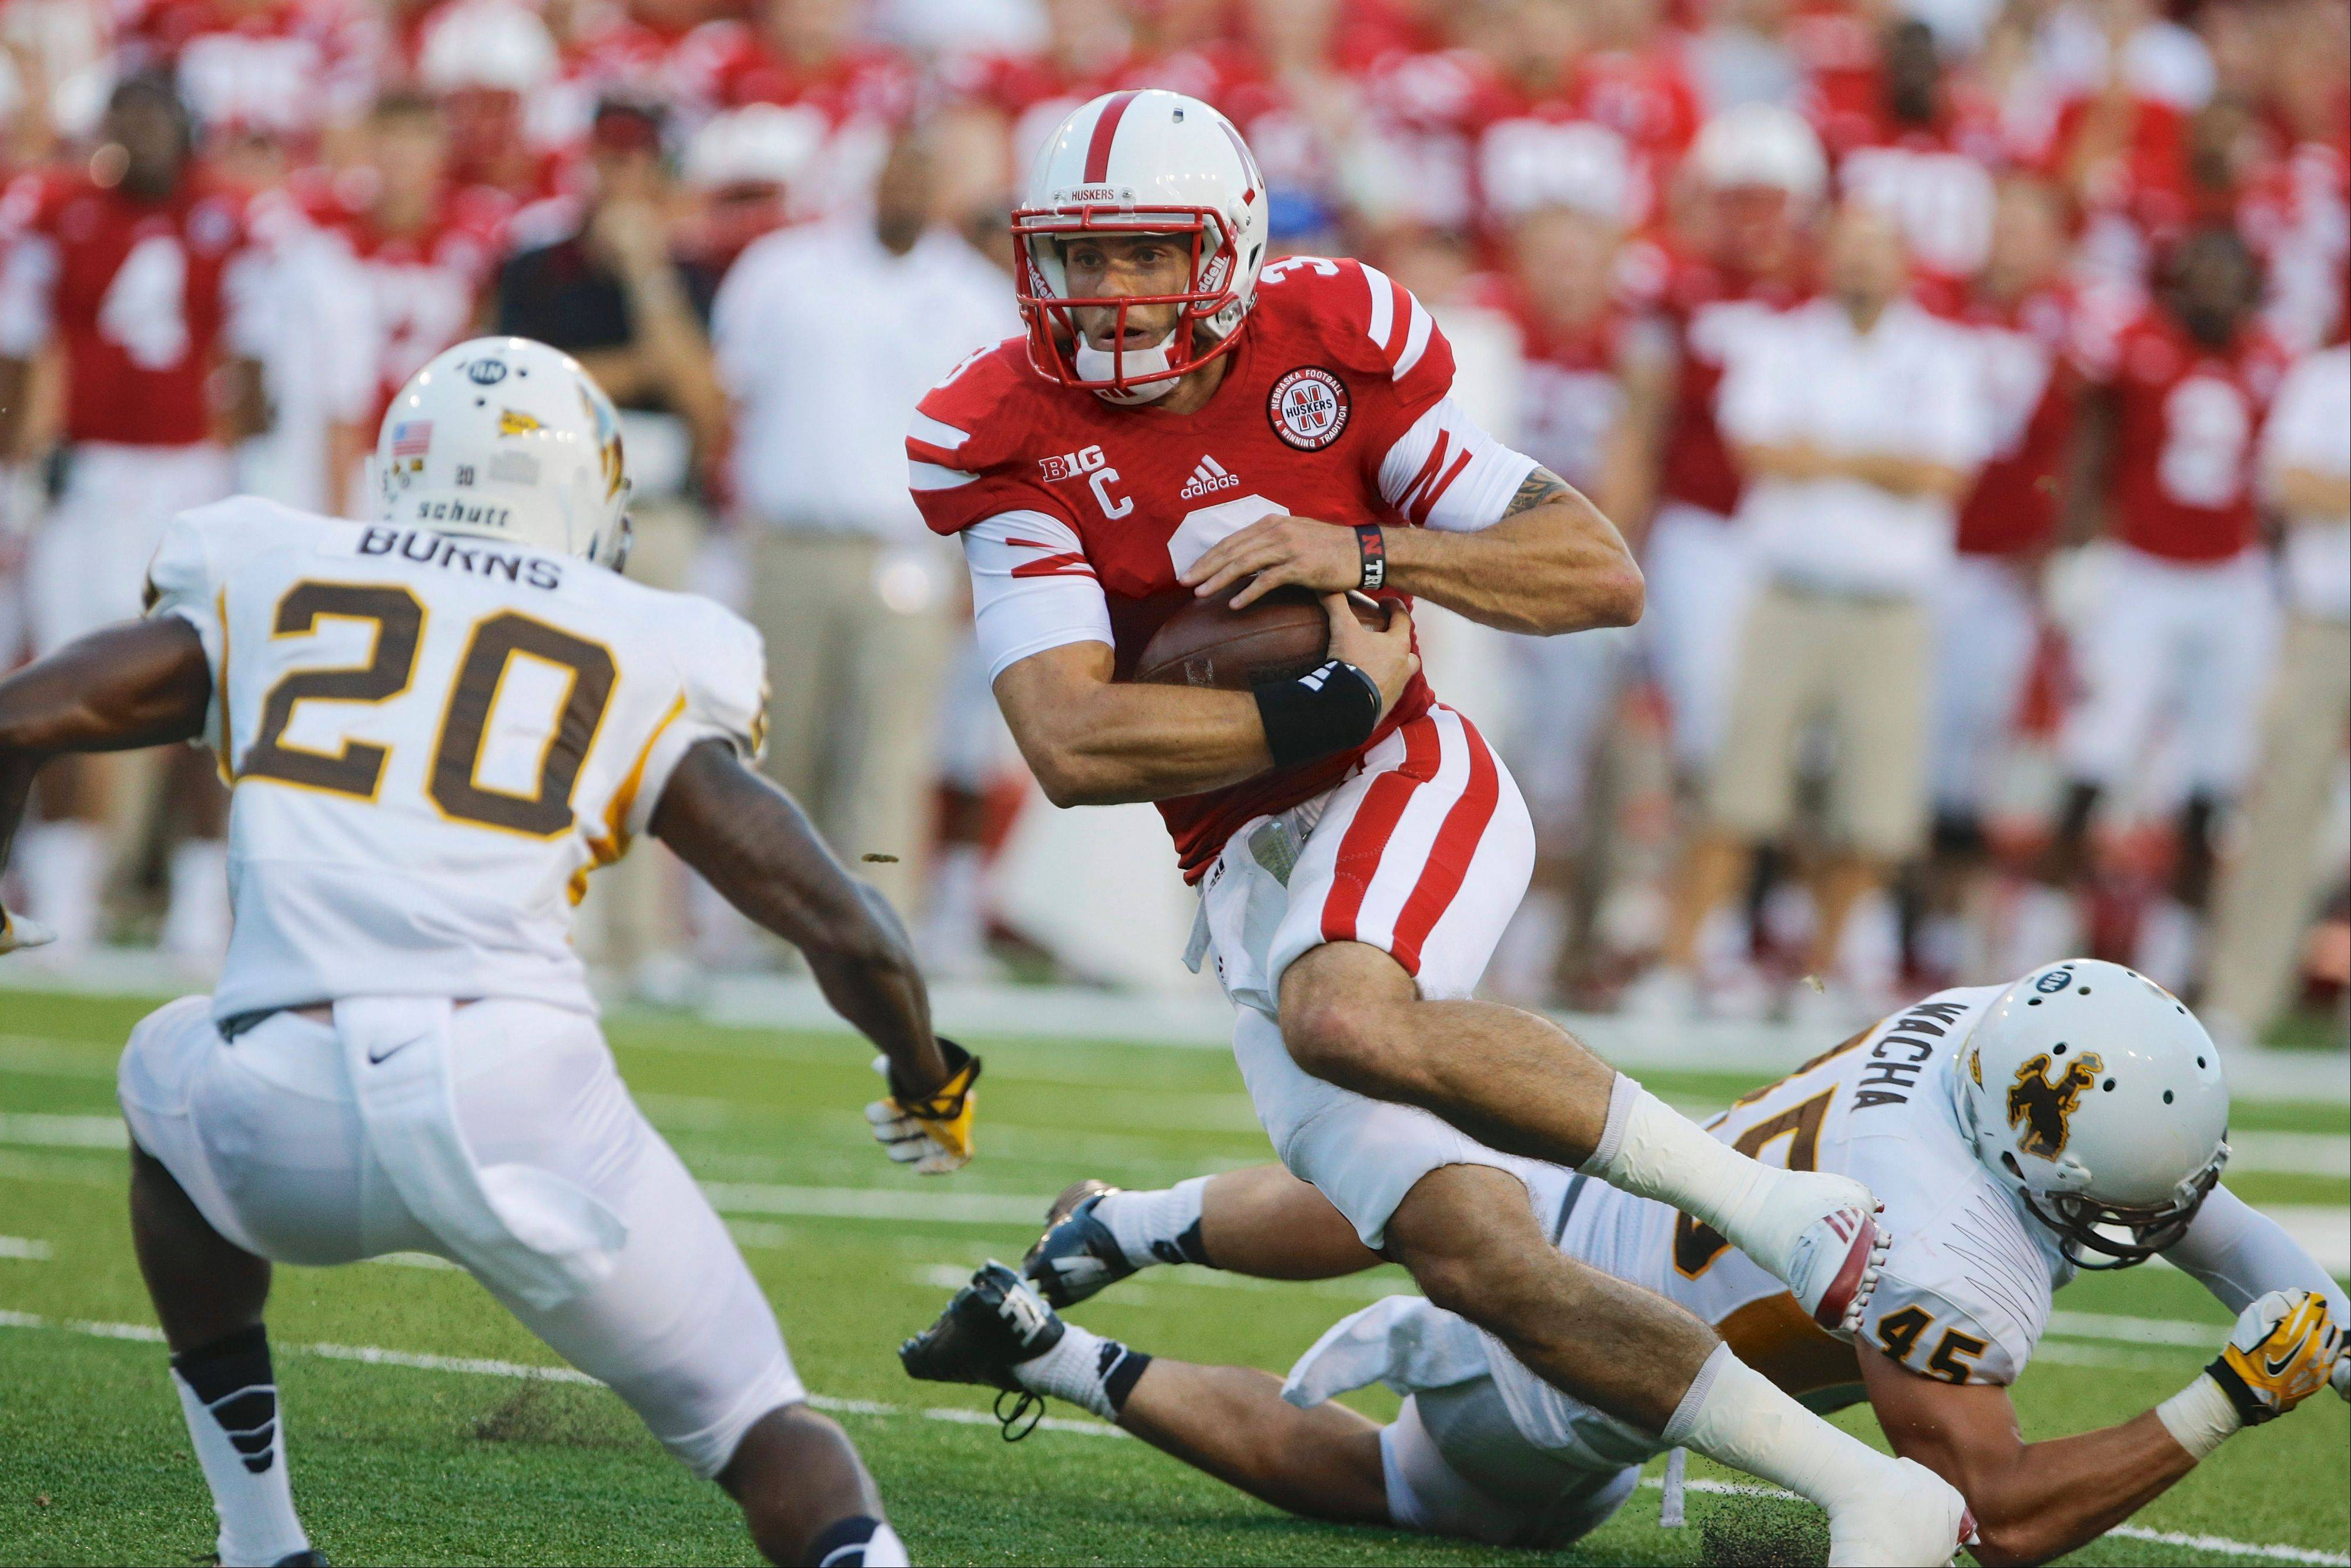 Nebraska QB says his left shoulder is fine